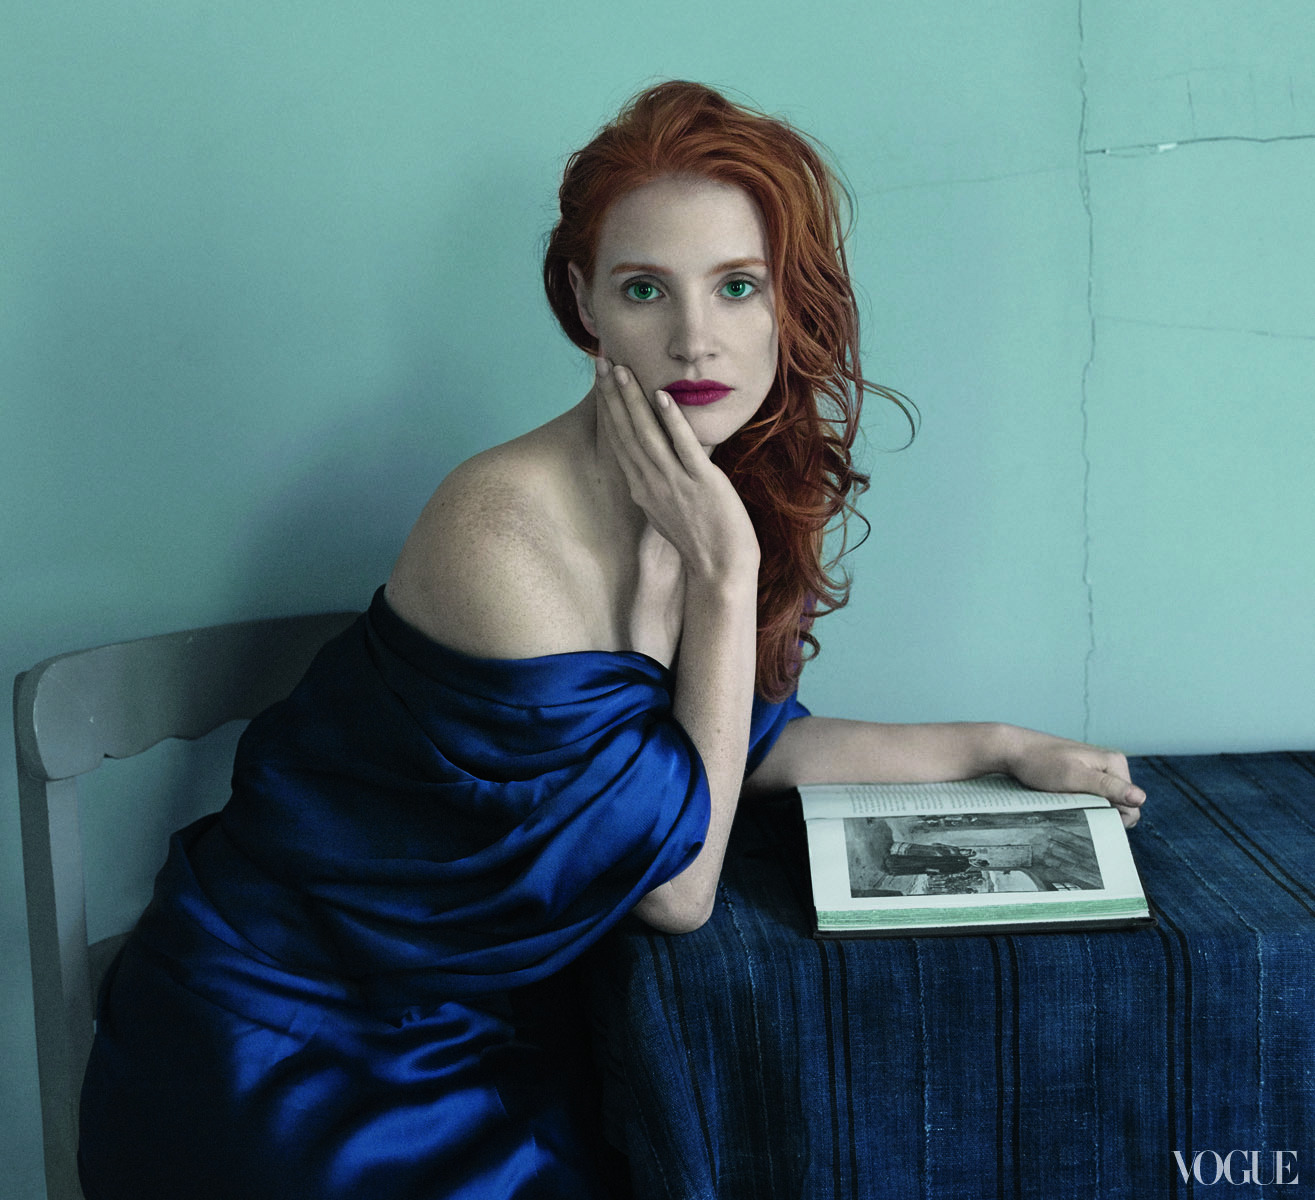 Jessica-Chastain-image-jessica-chastain-36069383-1315-1200